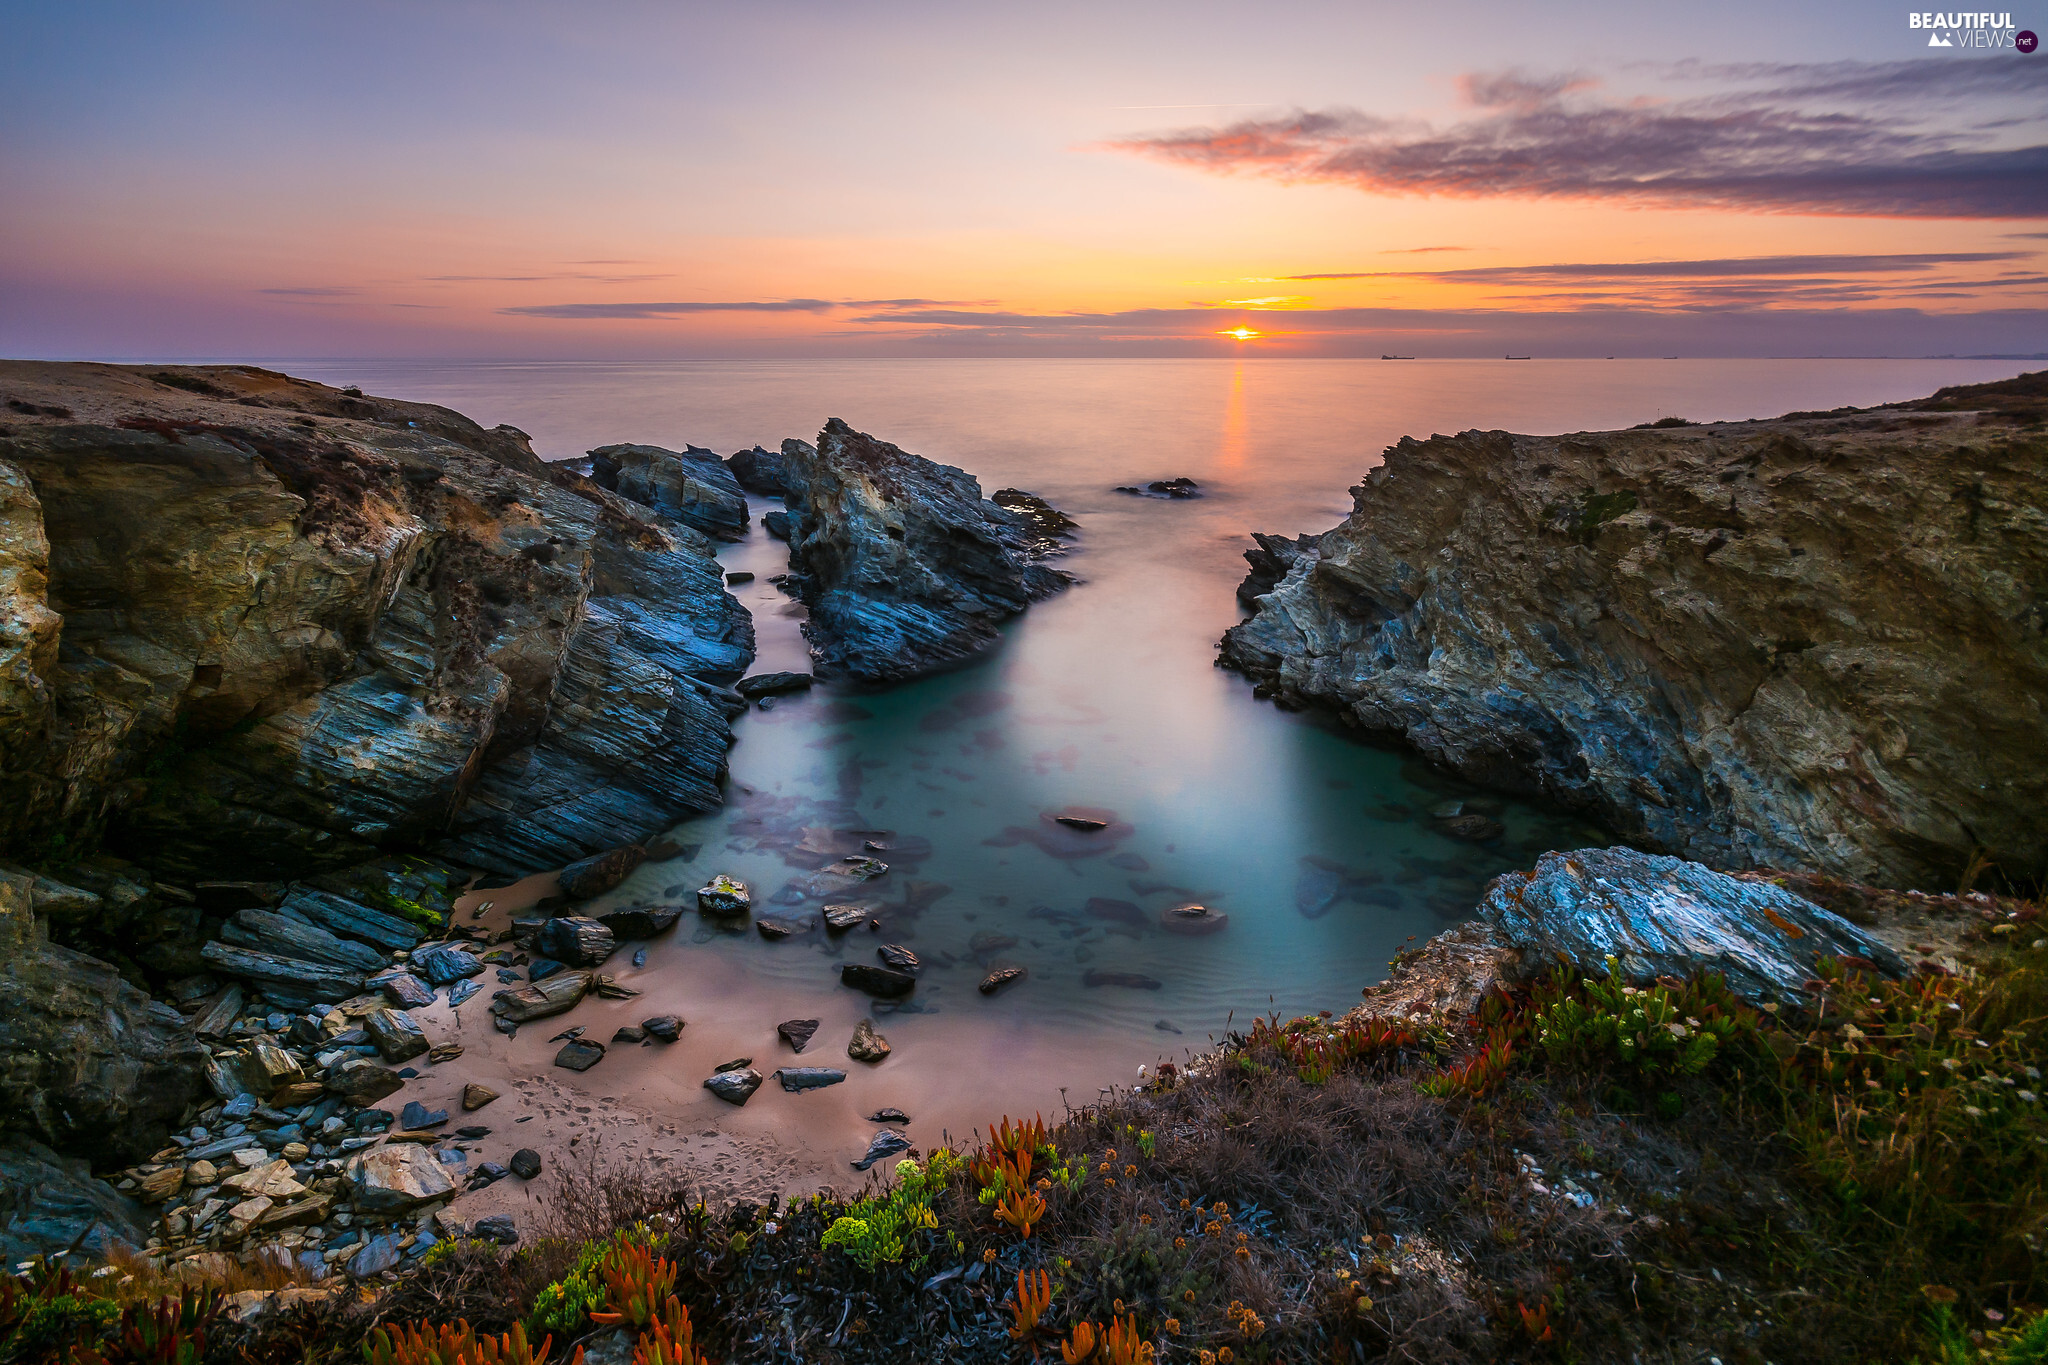 Great Sunsets, clouds, rocks, creek, sea